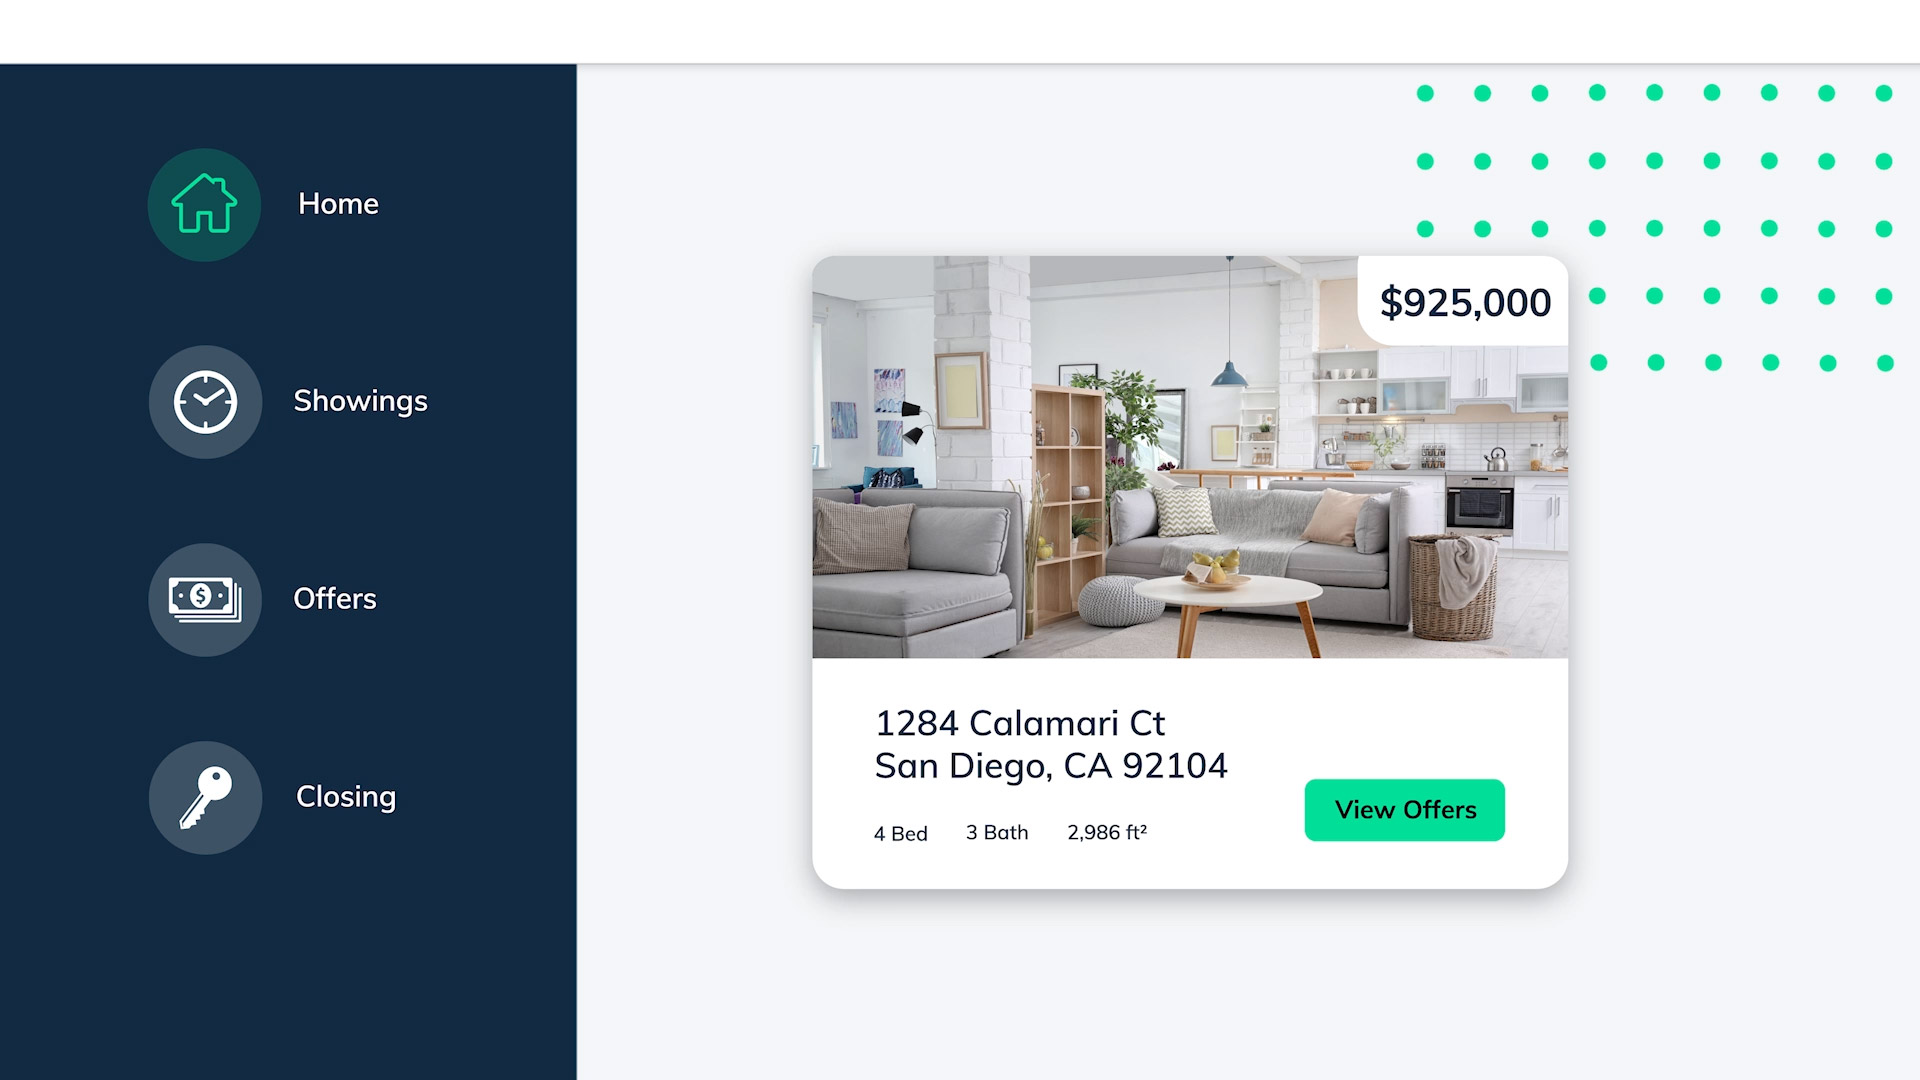 Displaying offers from buyers in online dashboard